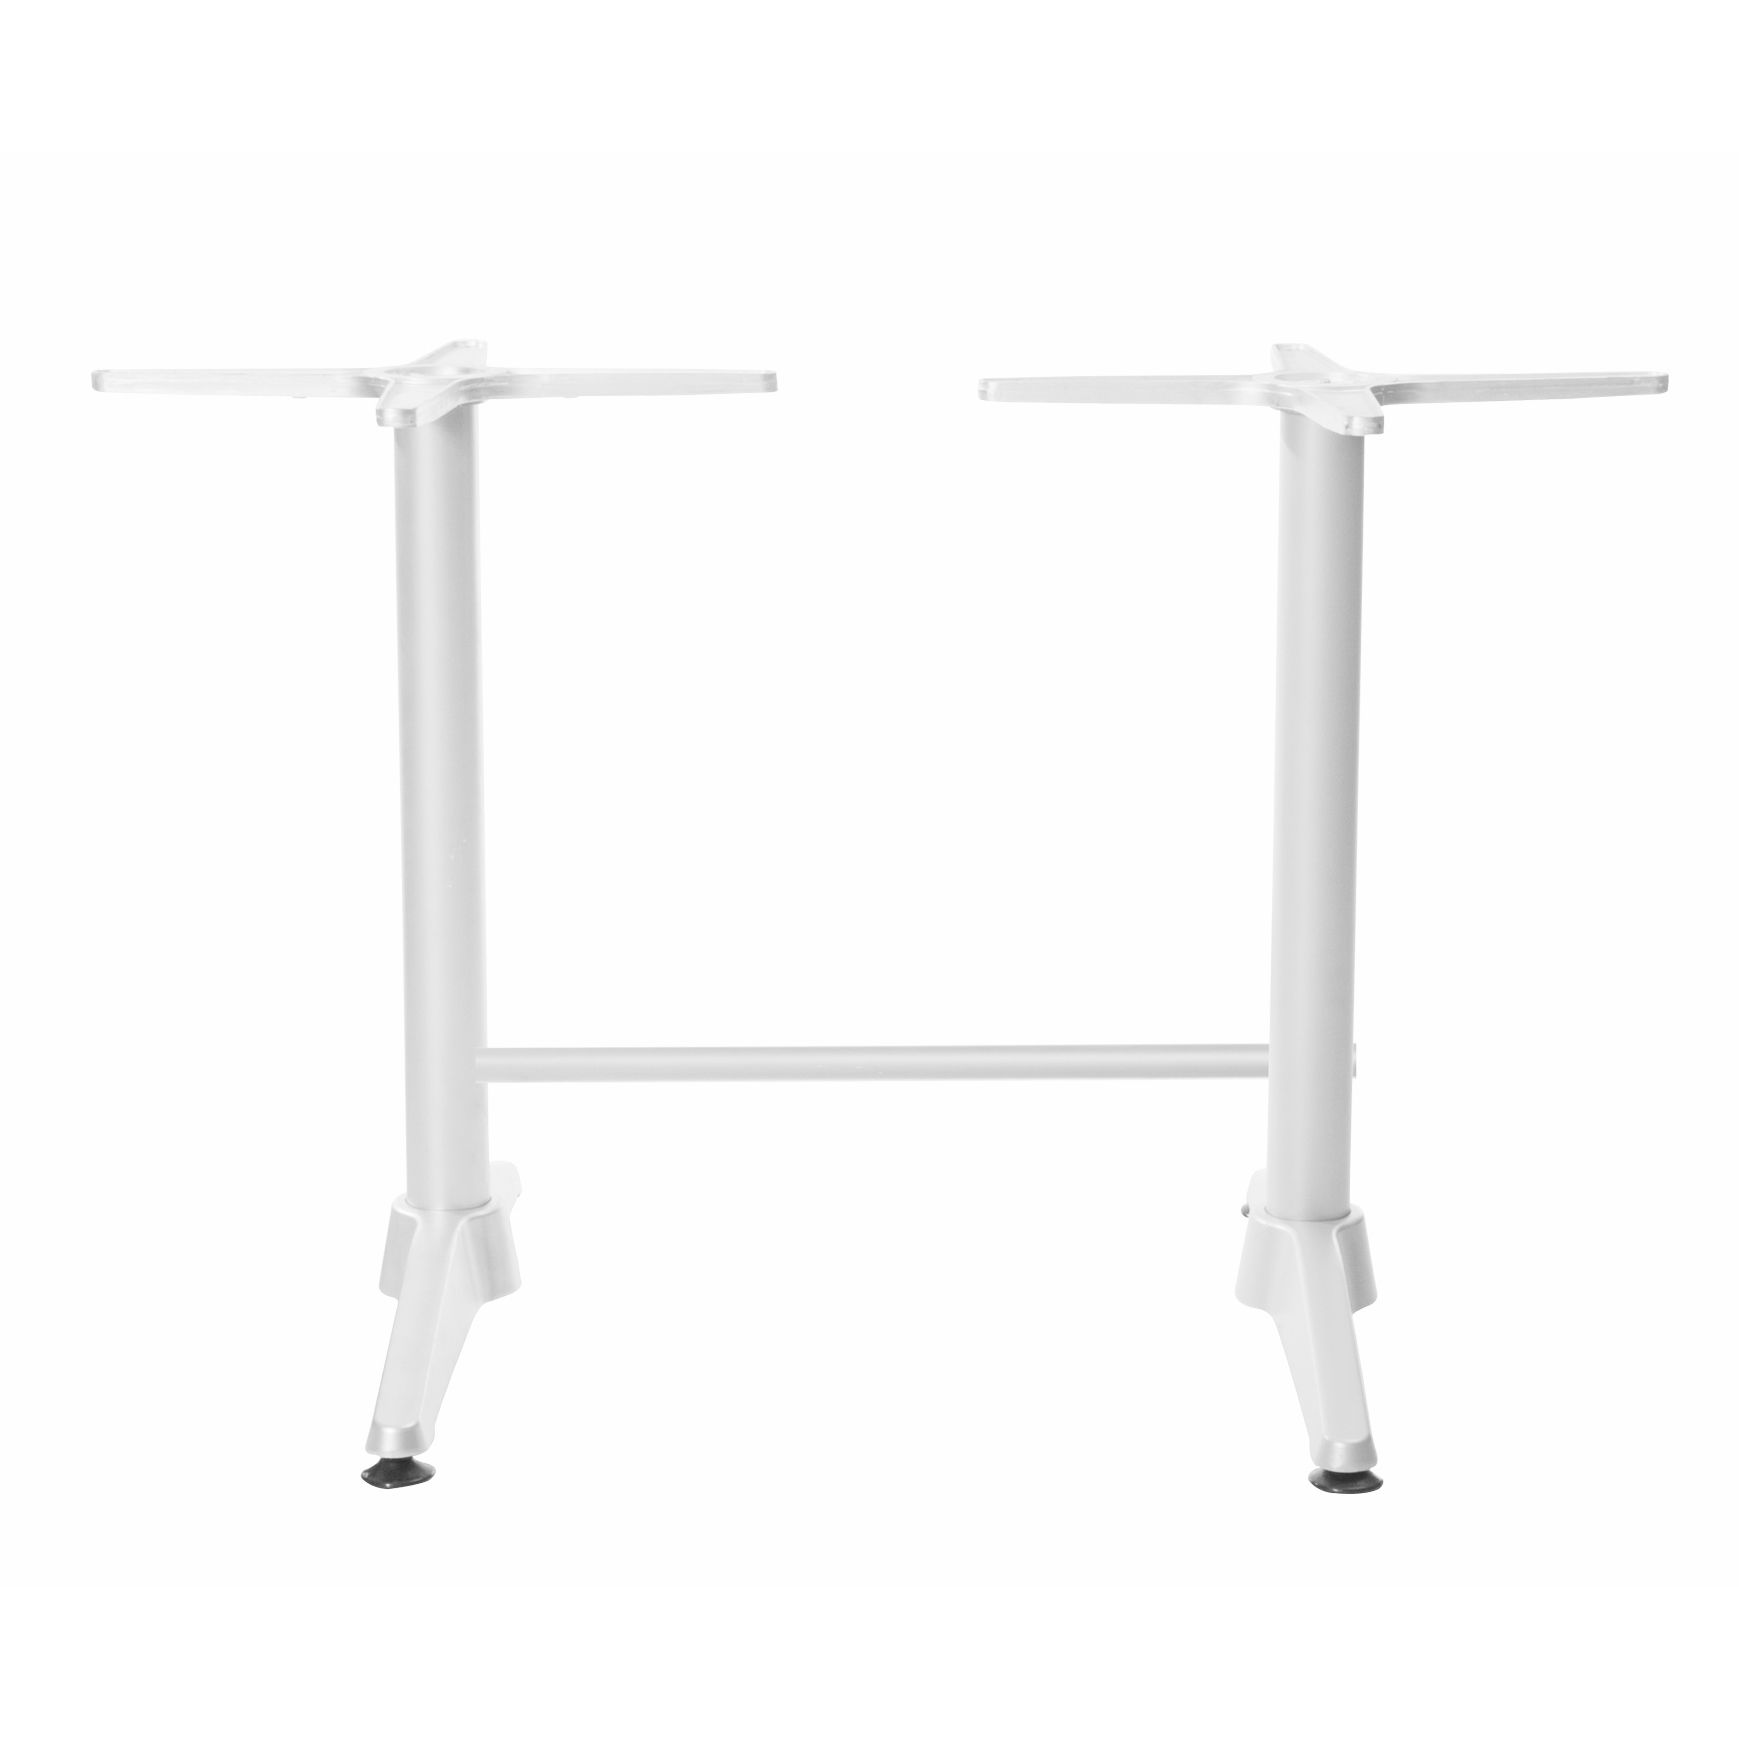 Astoria White Twin Table Base - For 1200x800 tops - Made in Europe